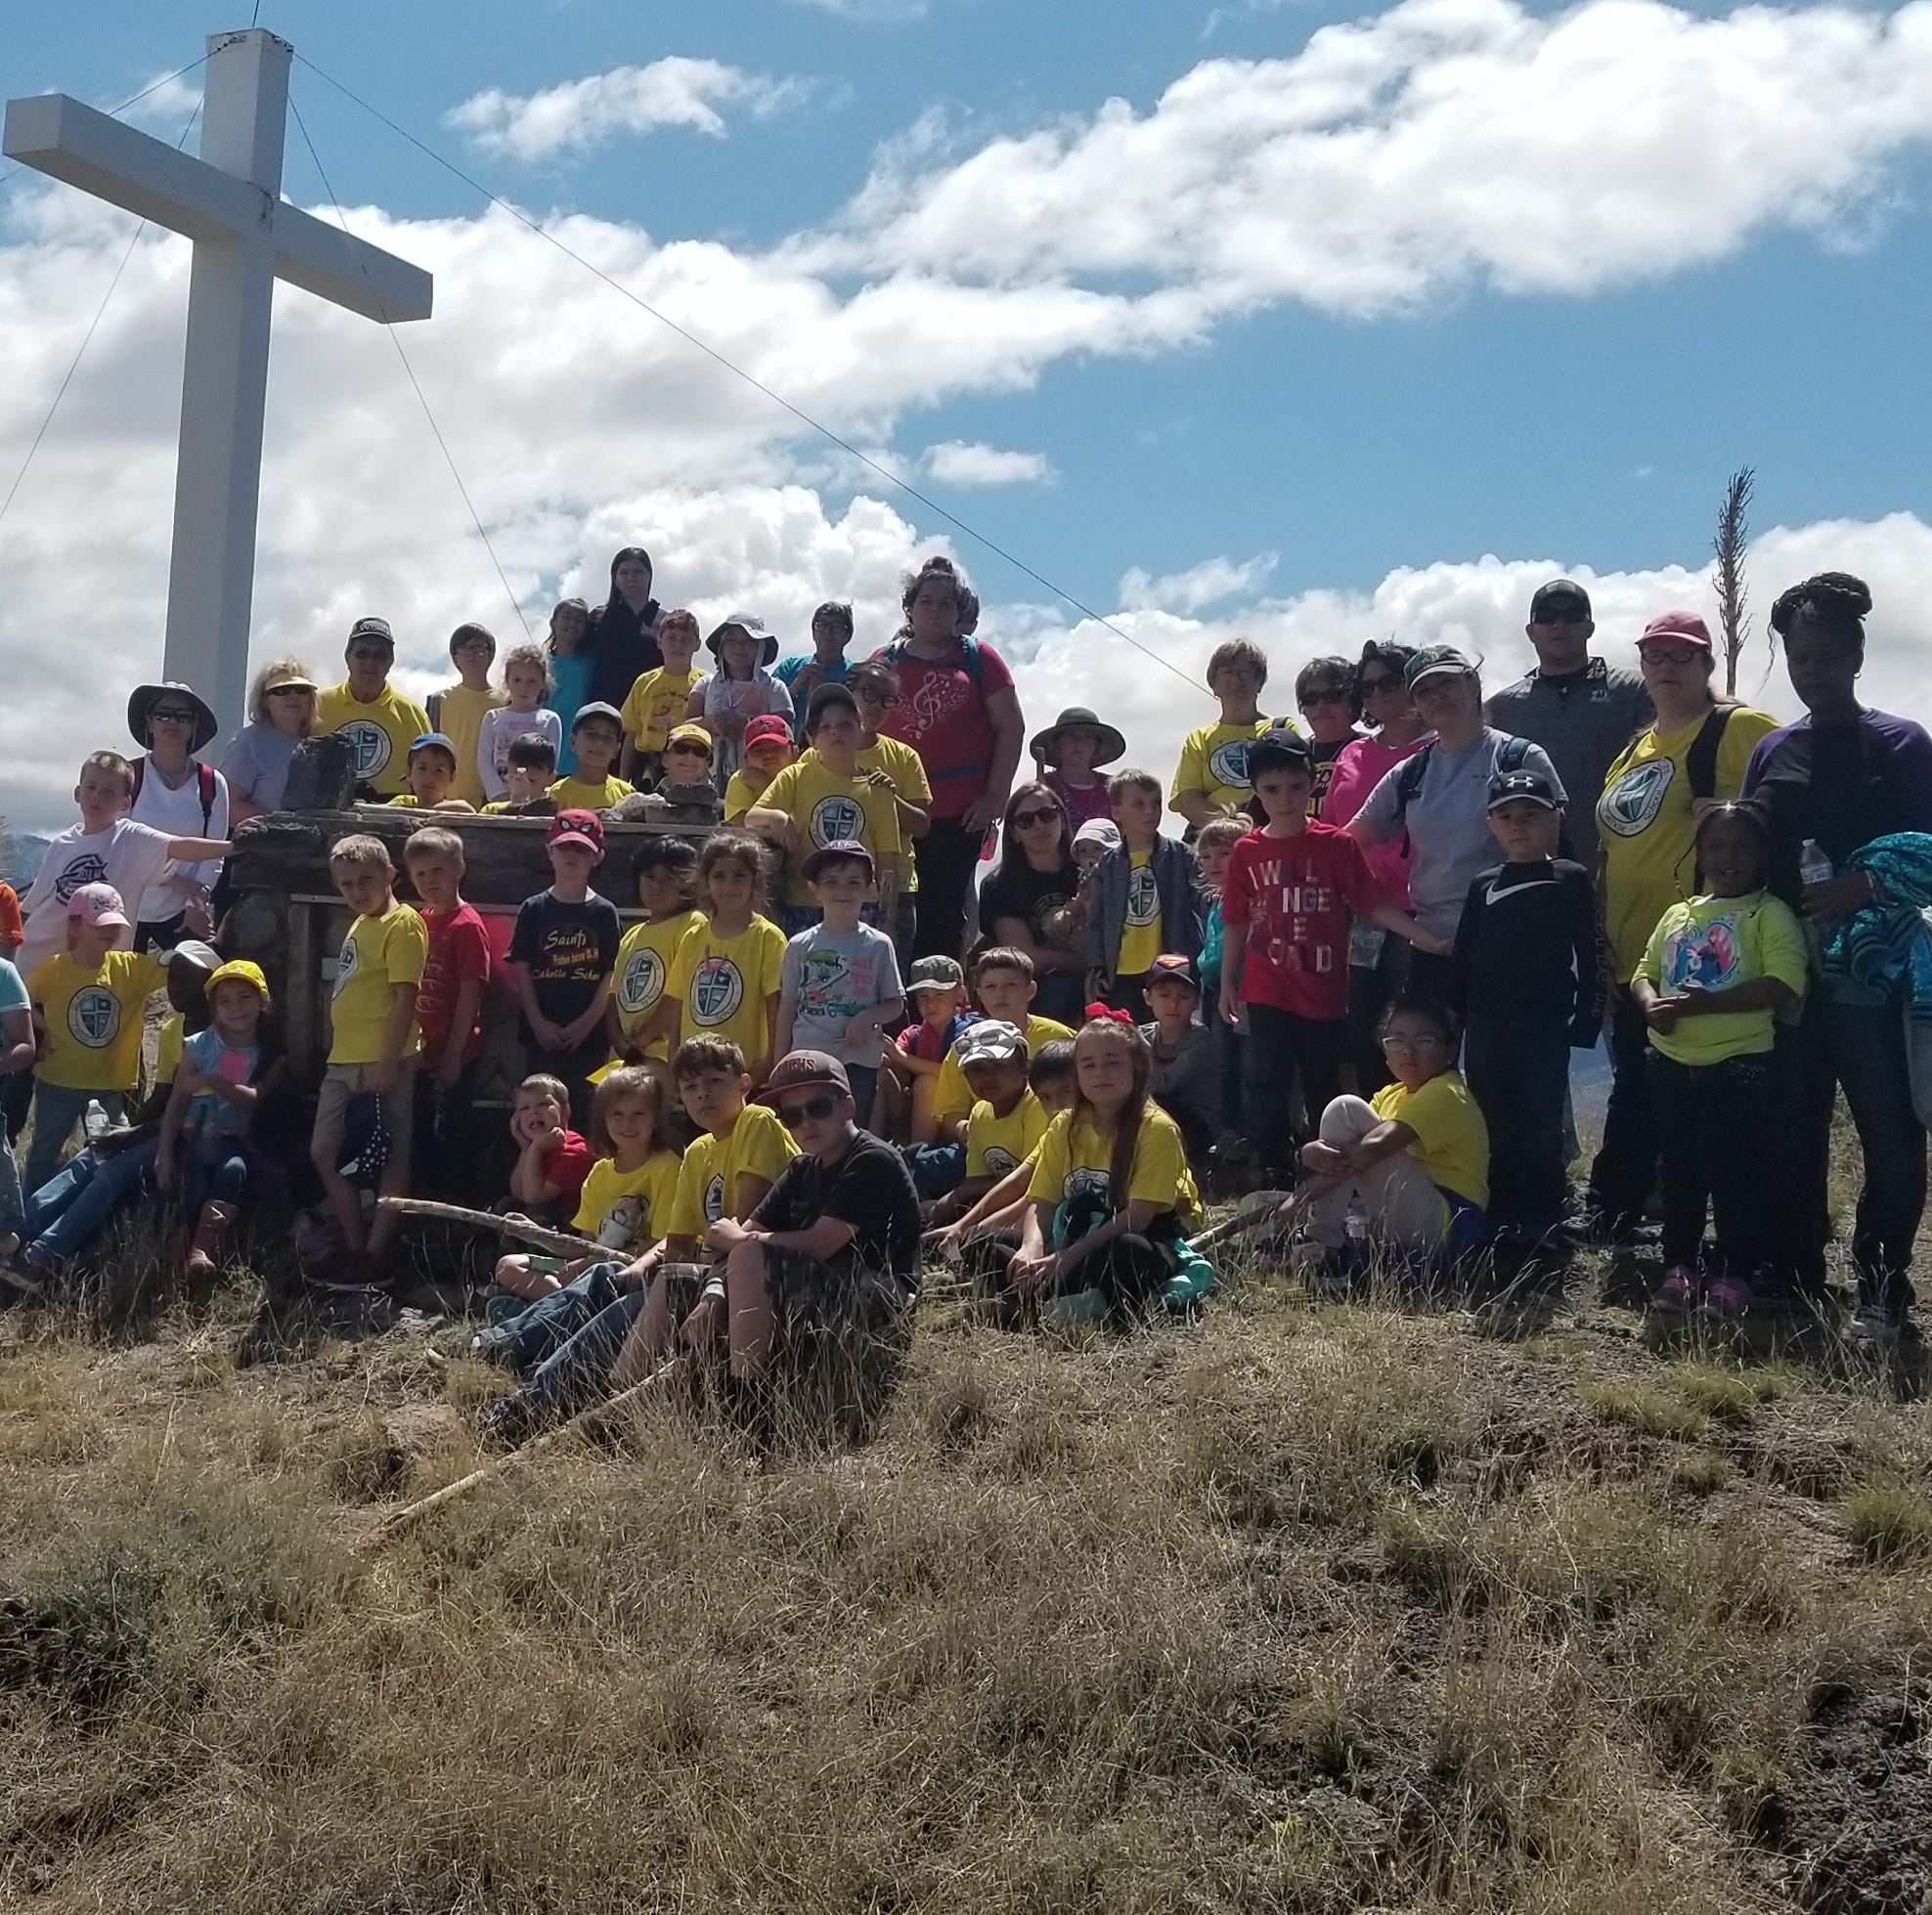 St. Frances Cabrini School takes field trip to do Stations of the Cross